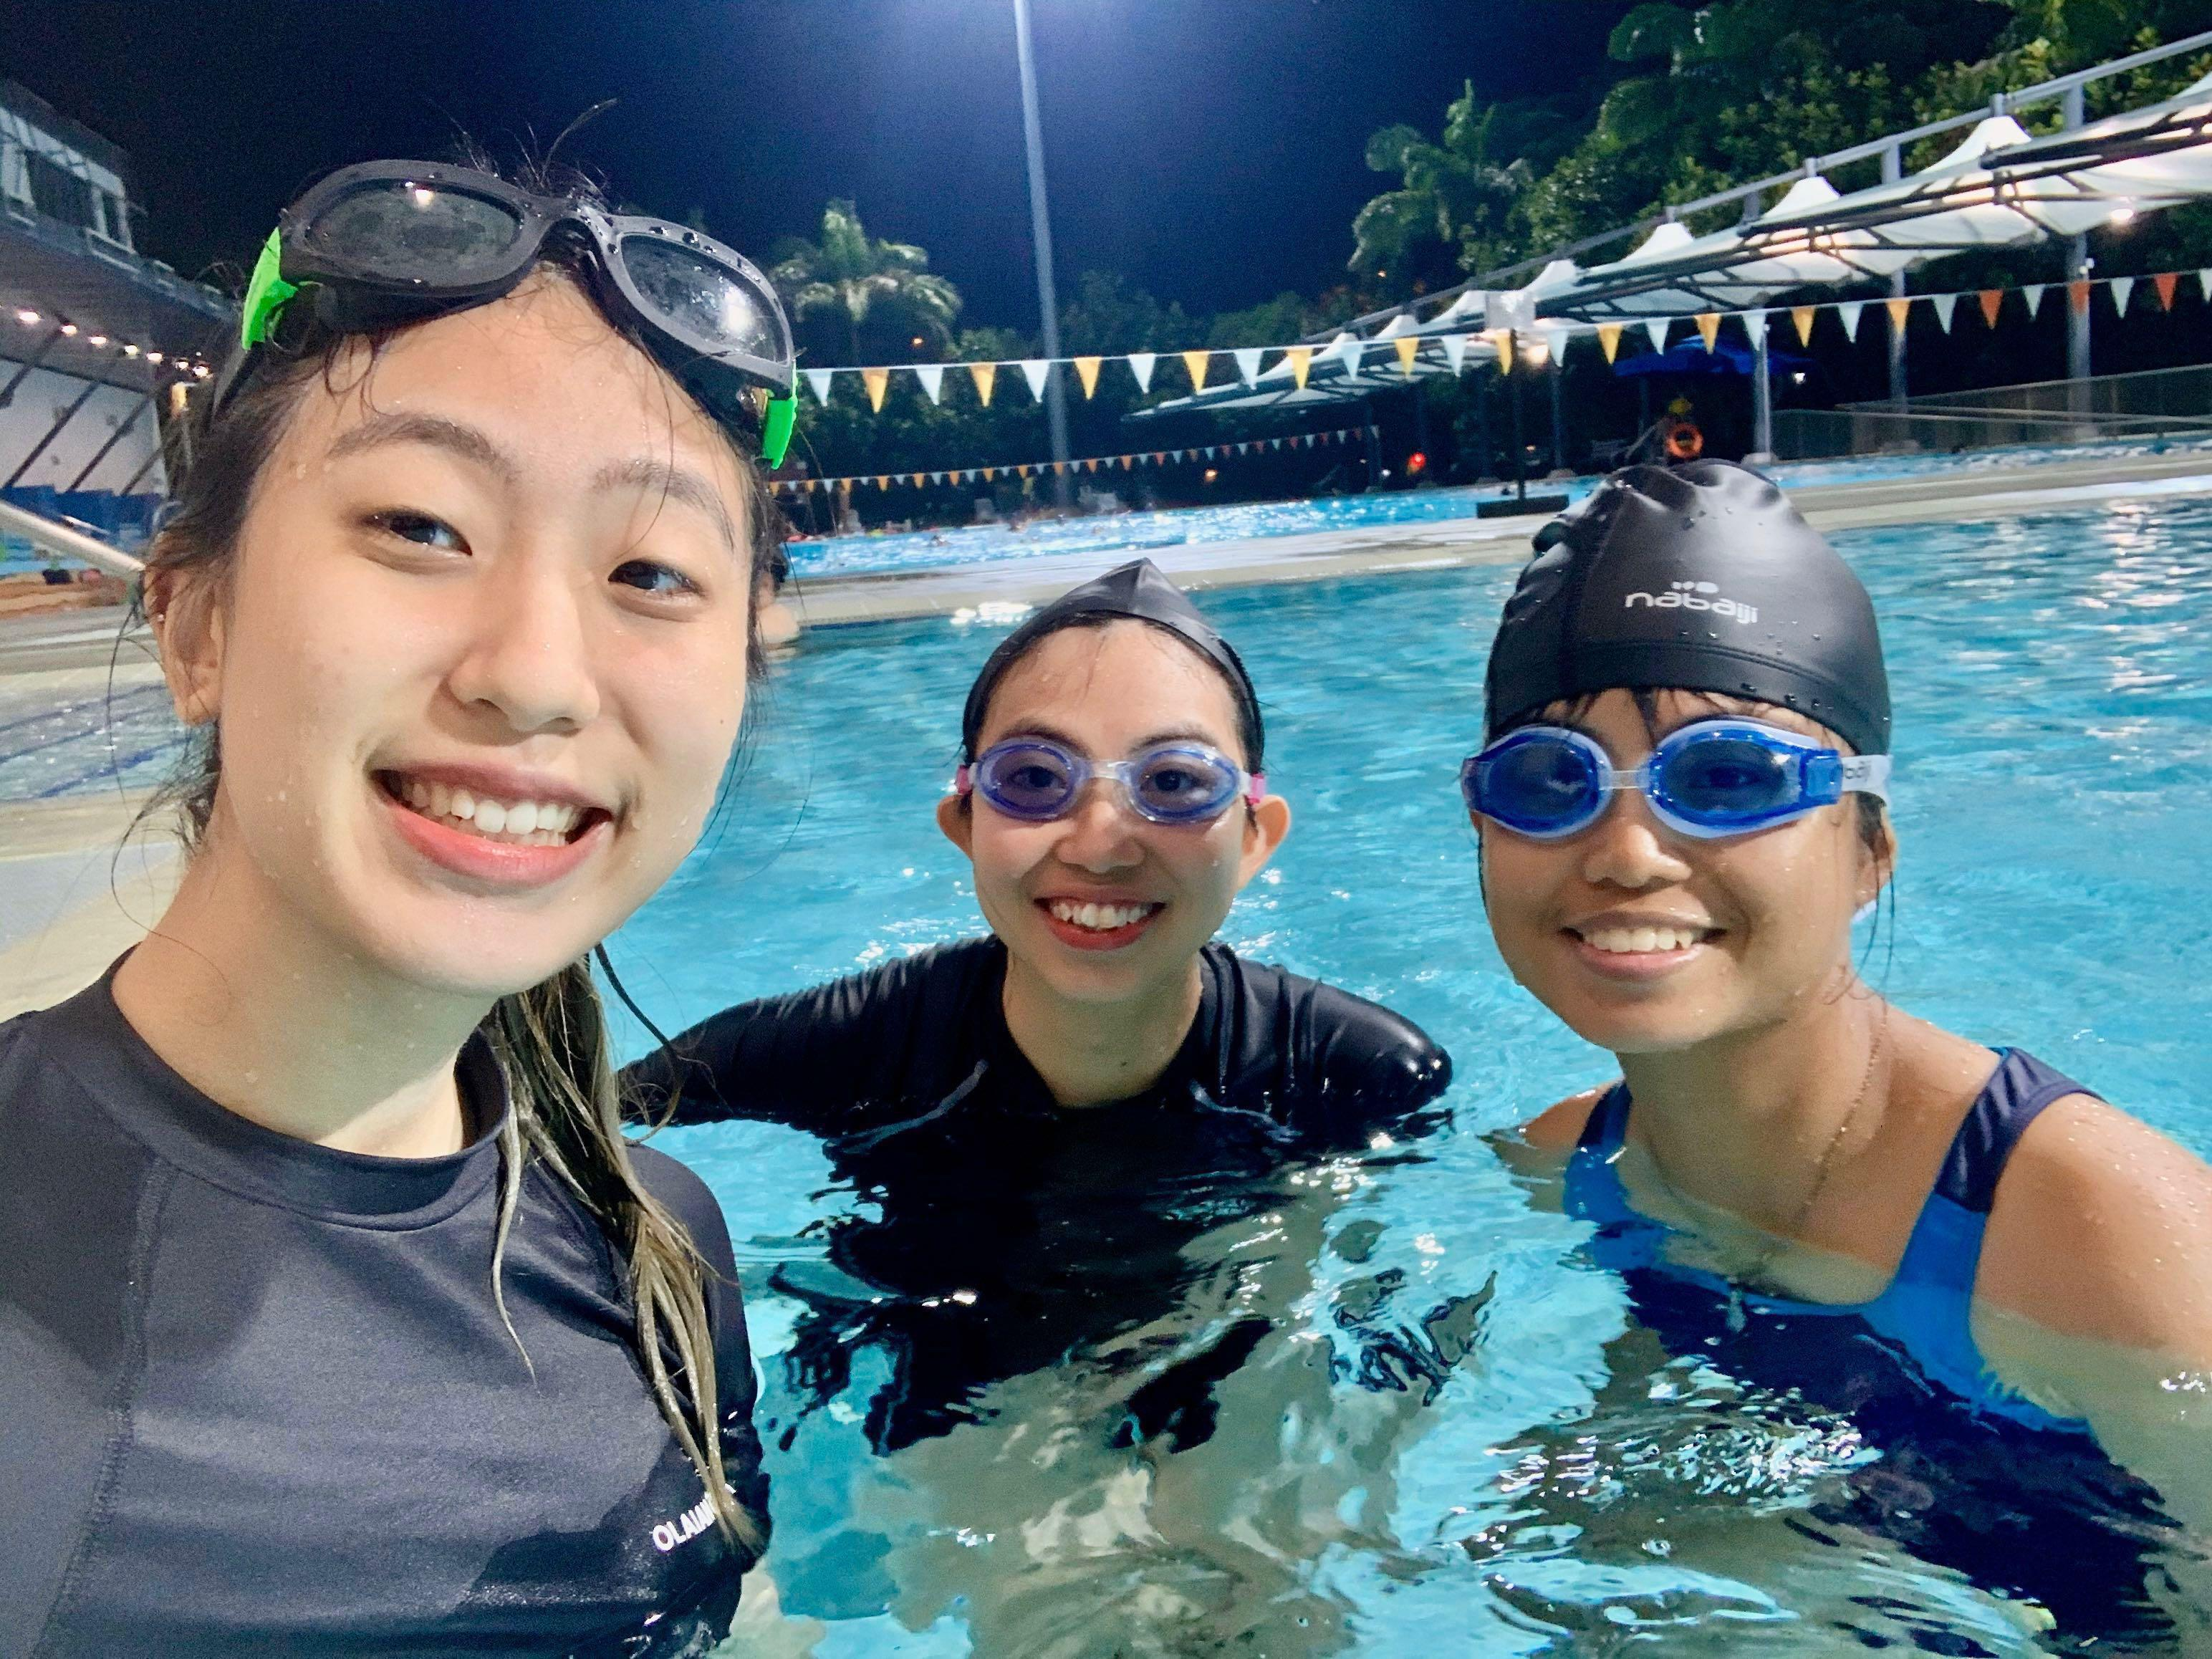 Kids/Adults Swimming Lessons Private 1-1/group (STA/Swimsafer cert) Female/Male swim coach instructor